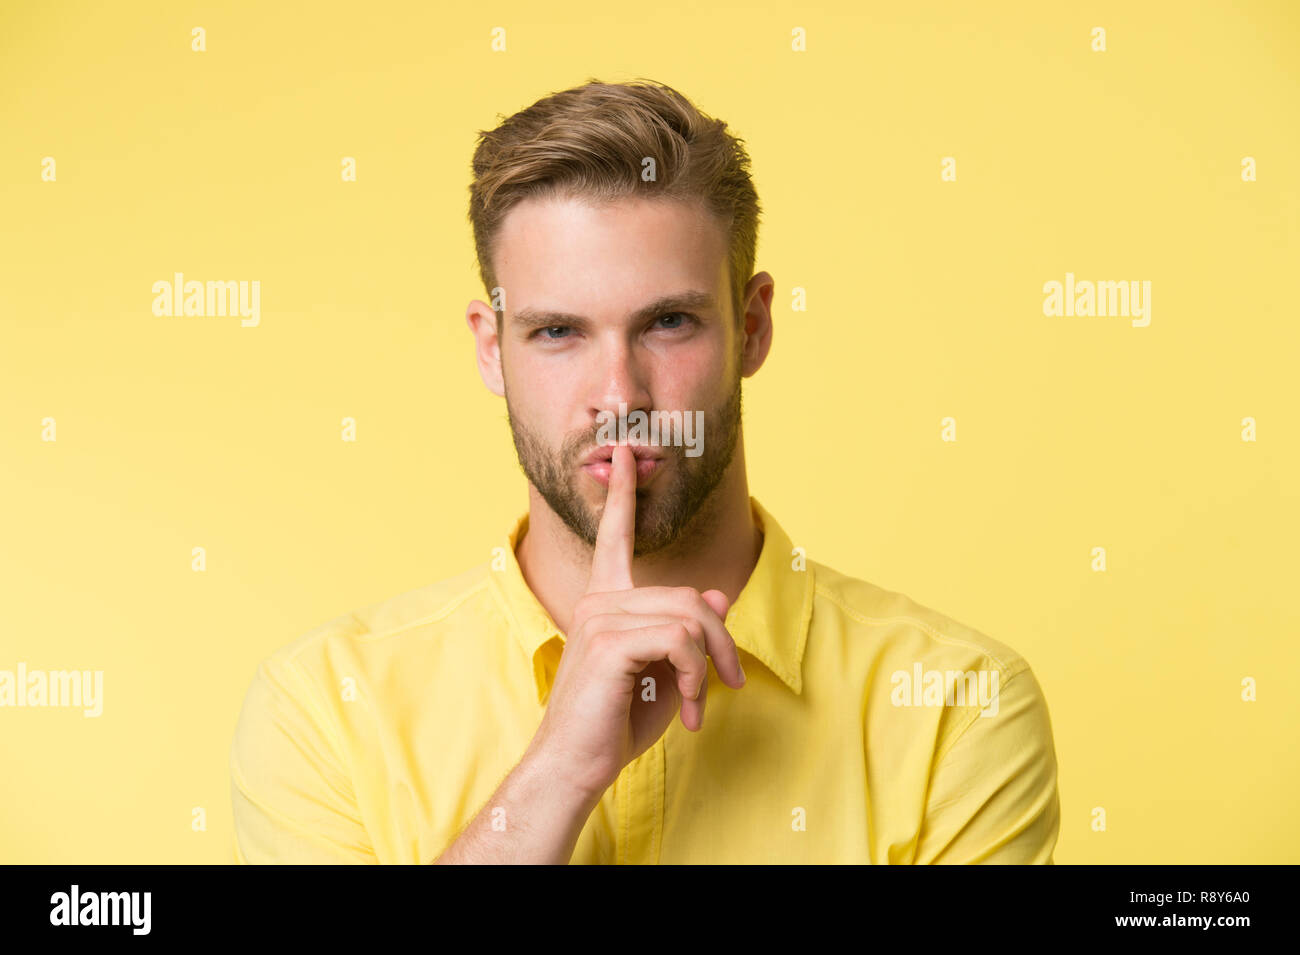 Can you keep secret. Handsome man keep index finger by his lips. Be silent. Secret story concept. Guy confident face just told his secret. Rumor legend and myth. Confidential information and secret. Stock Photo